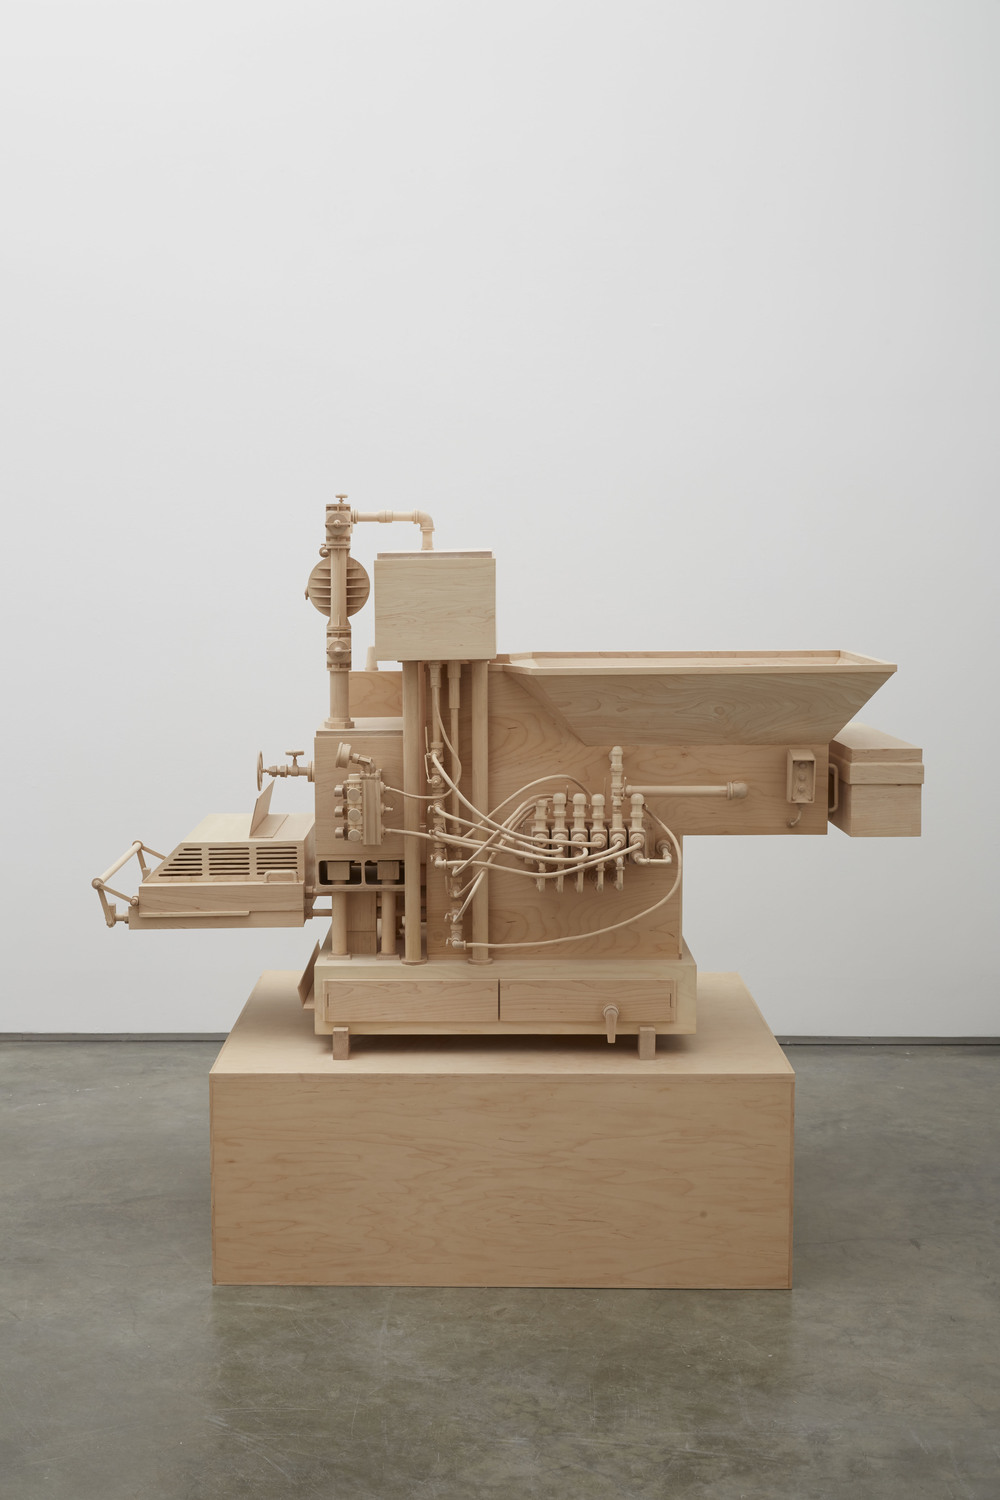 Machine of Indeterminacy, 2014, Birch wood, 66 x 40 x 44 1/2 inches, Photo: Jason Wyche